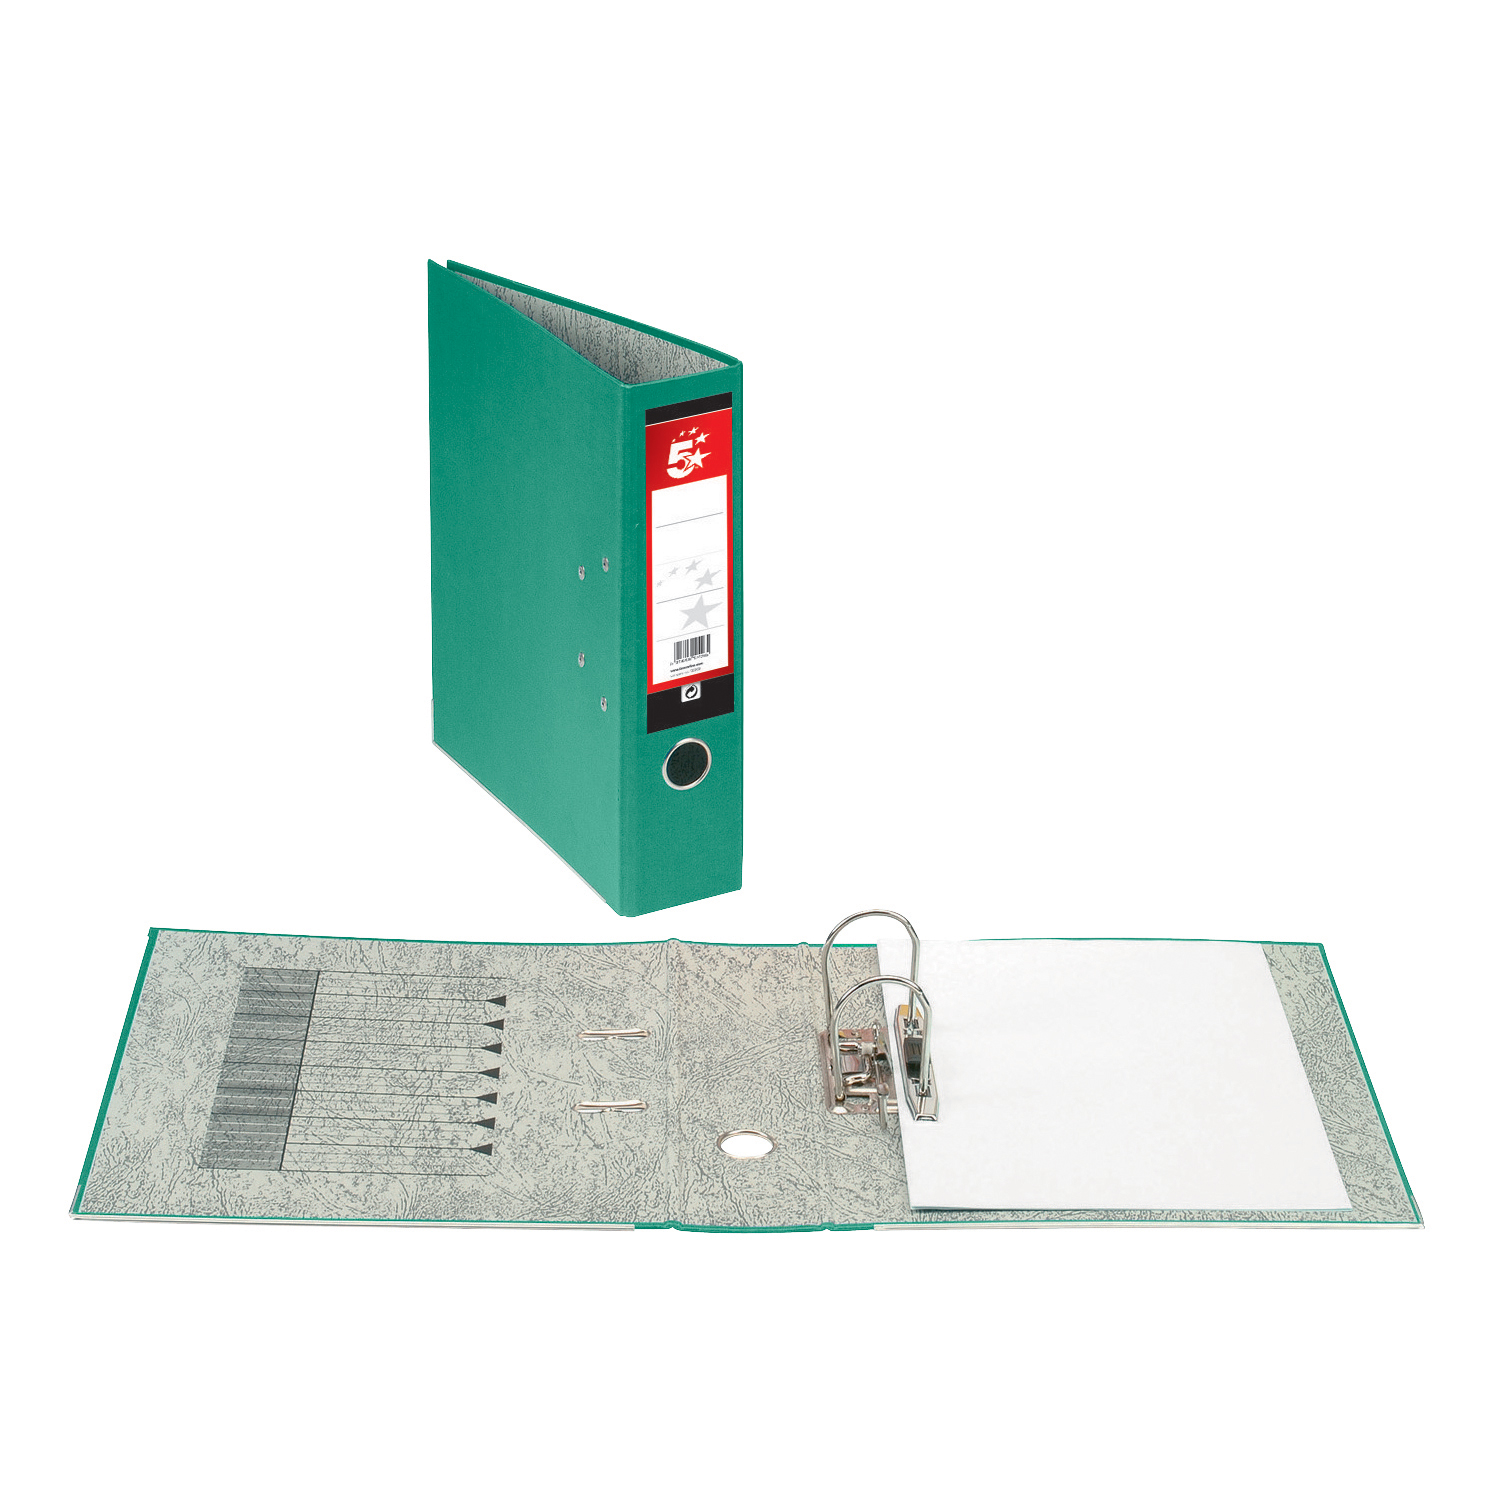 5 Star Office Lever Arch File 70mm Foolscap Green